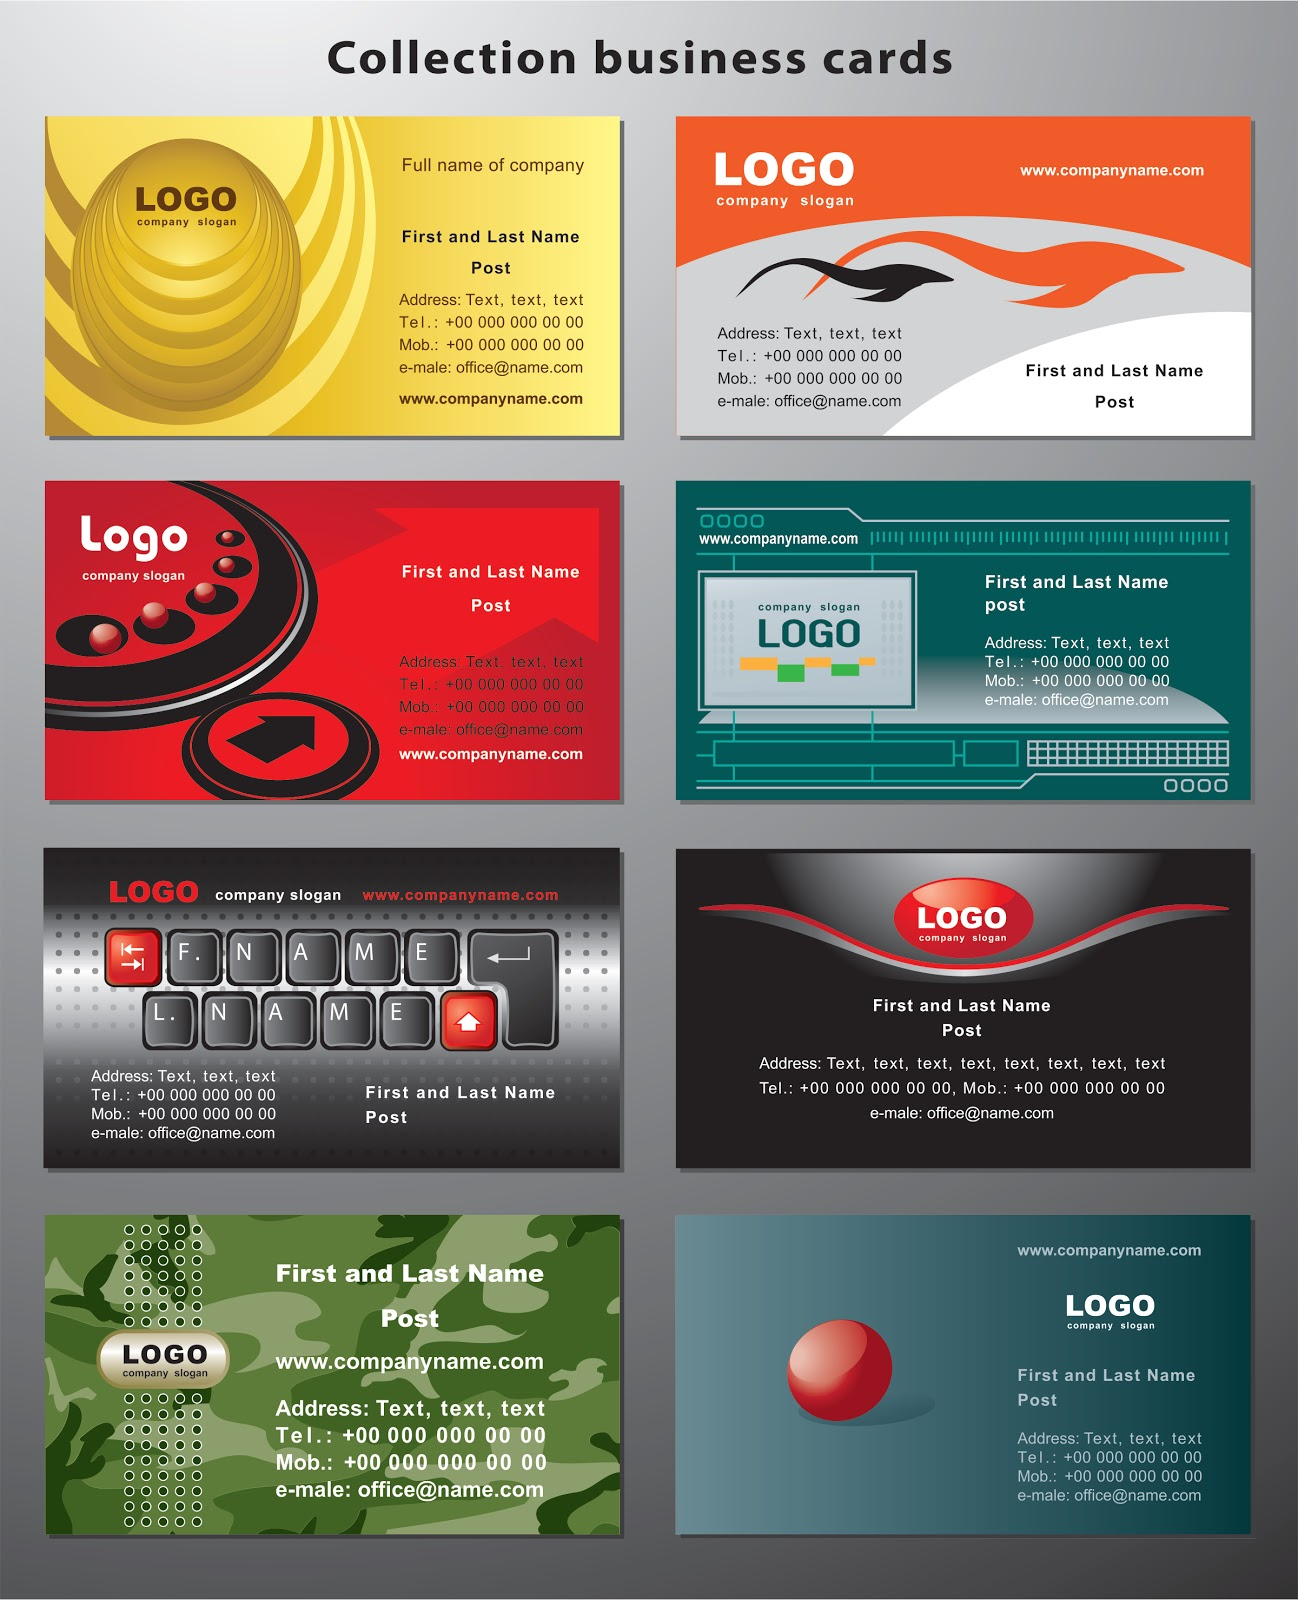 Collection Business Cards Cdr